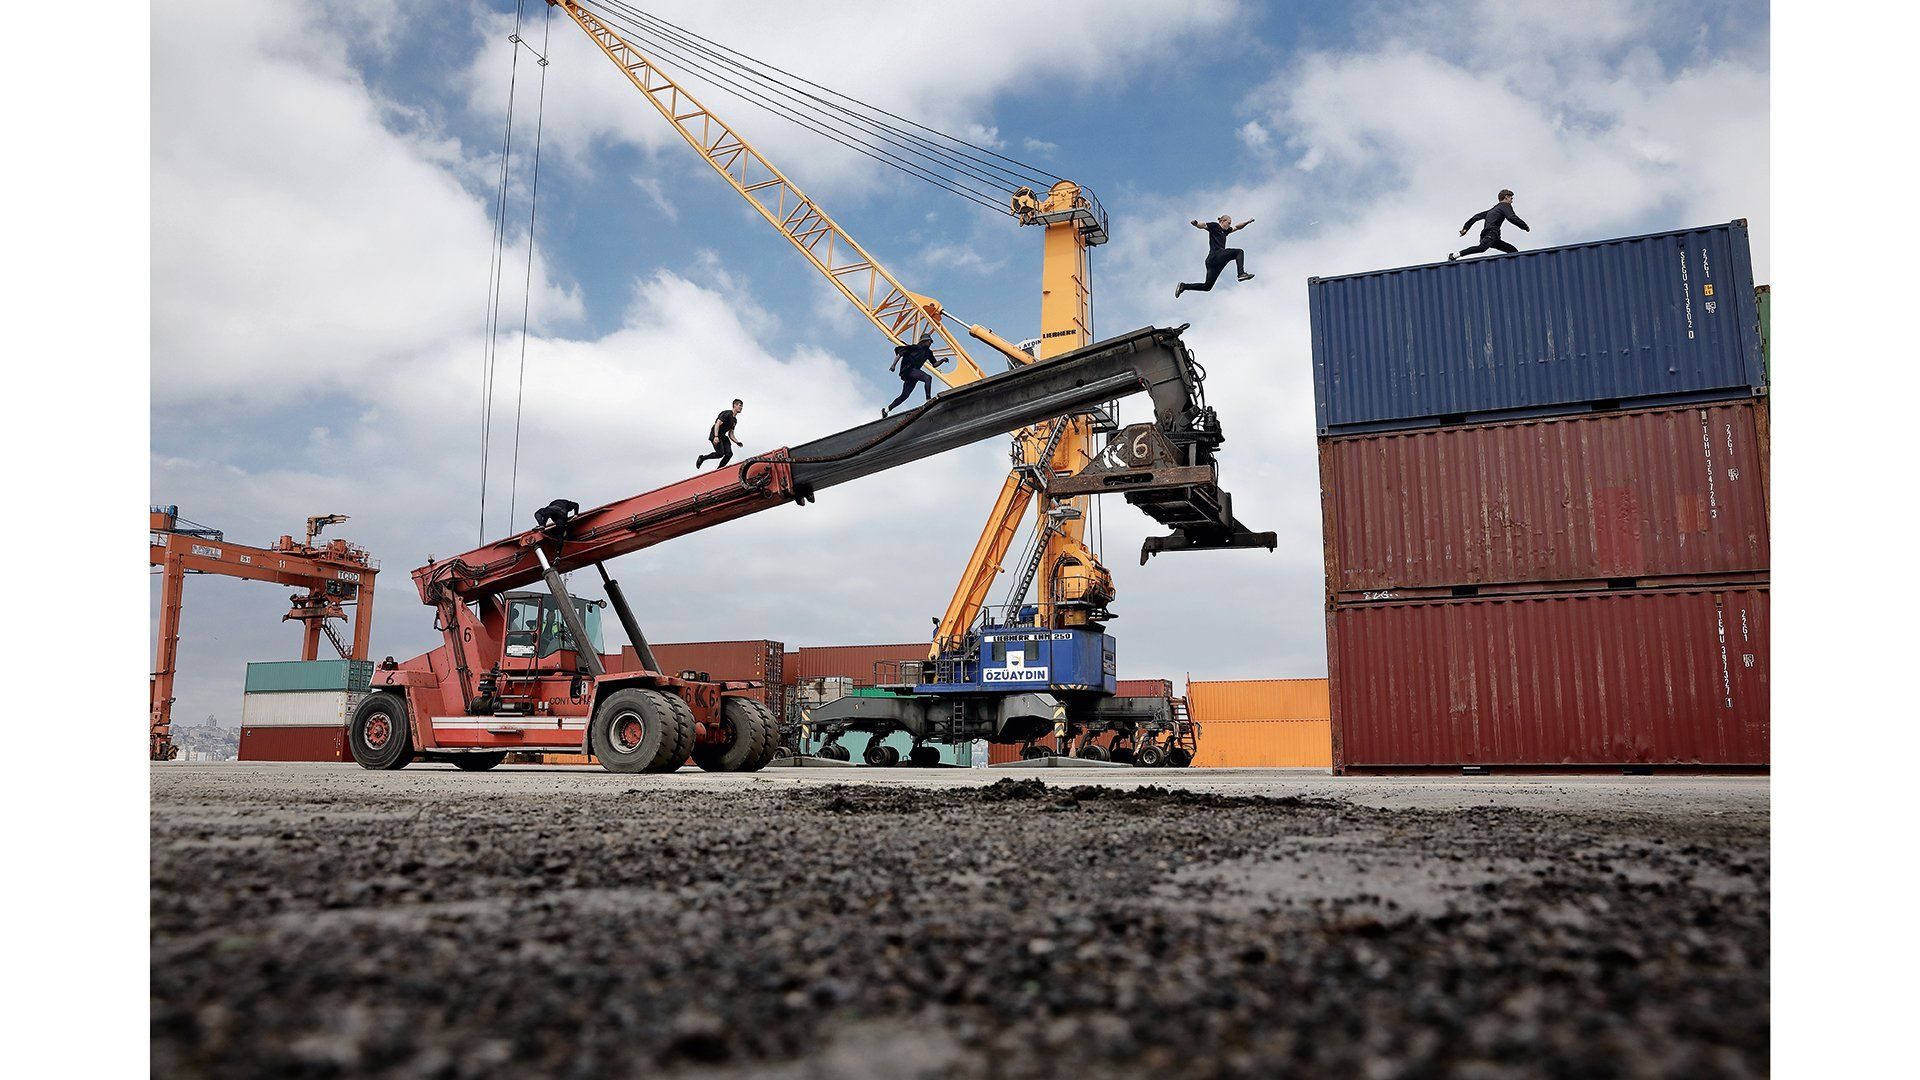 4 men running up a crane on to shipping containers